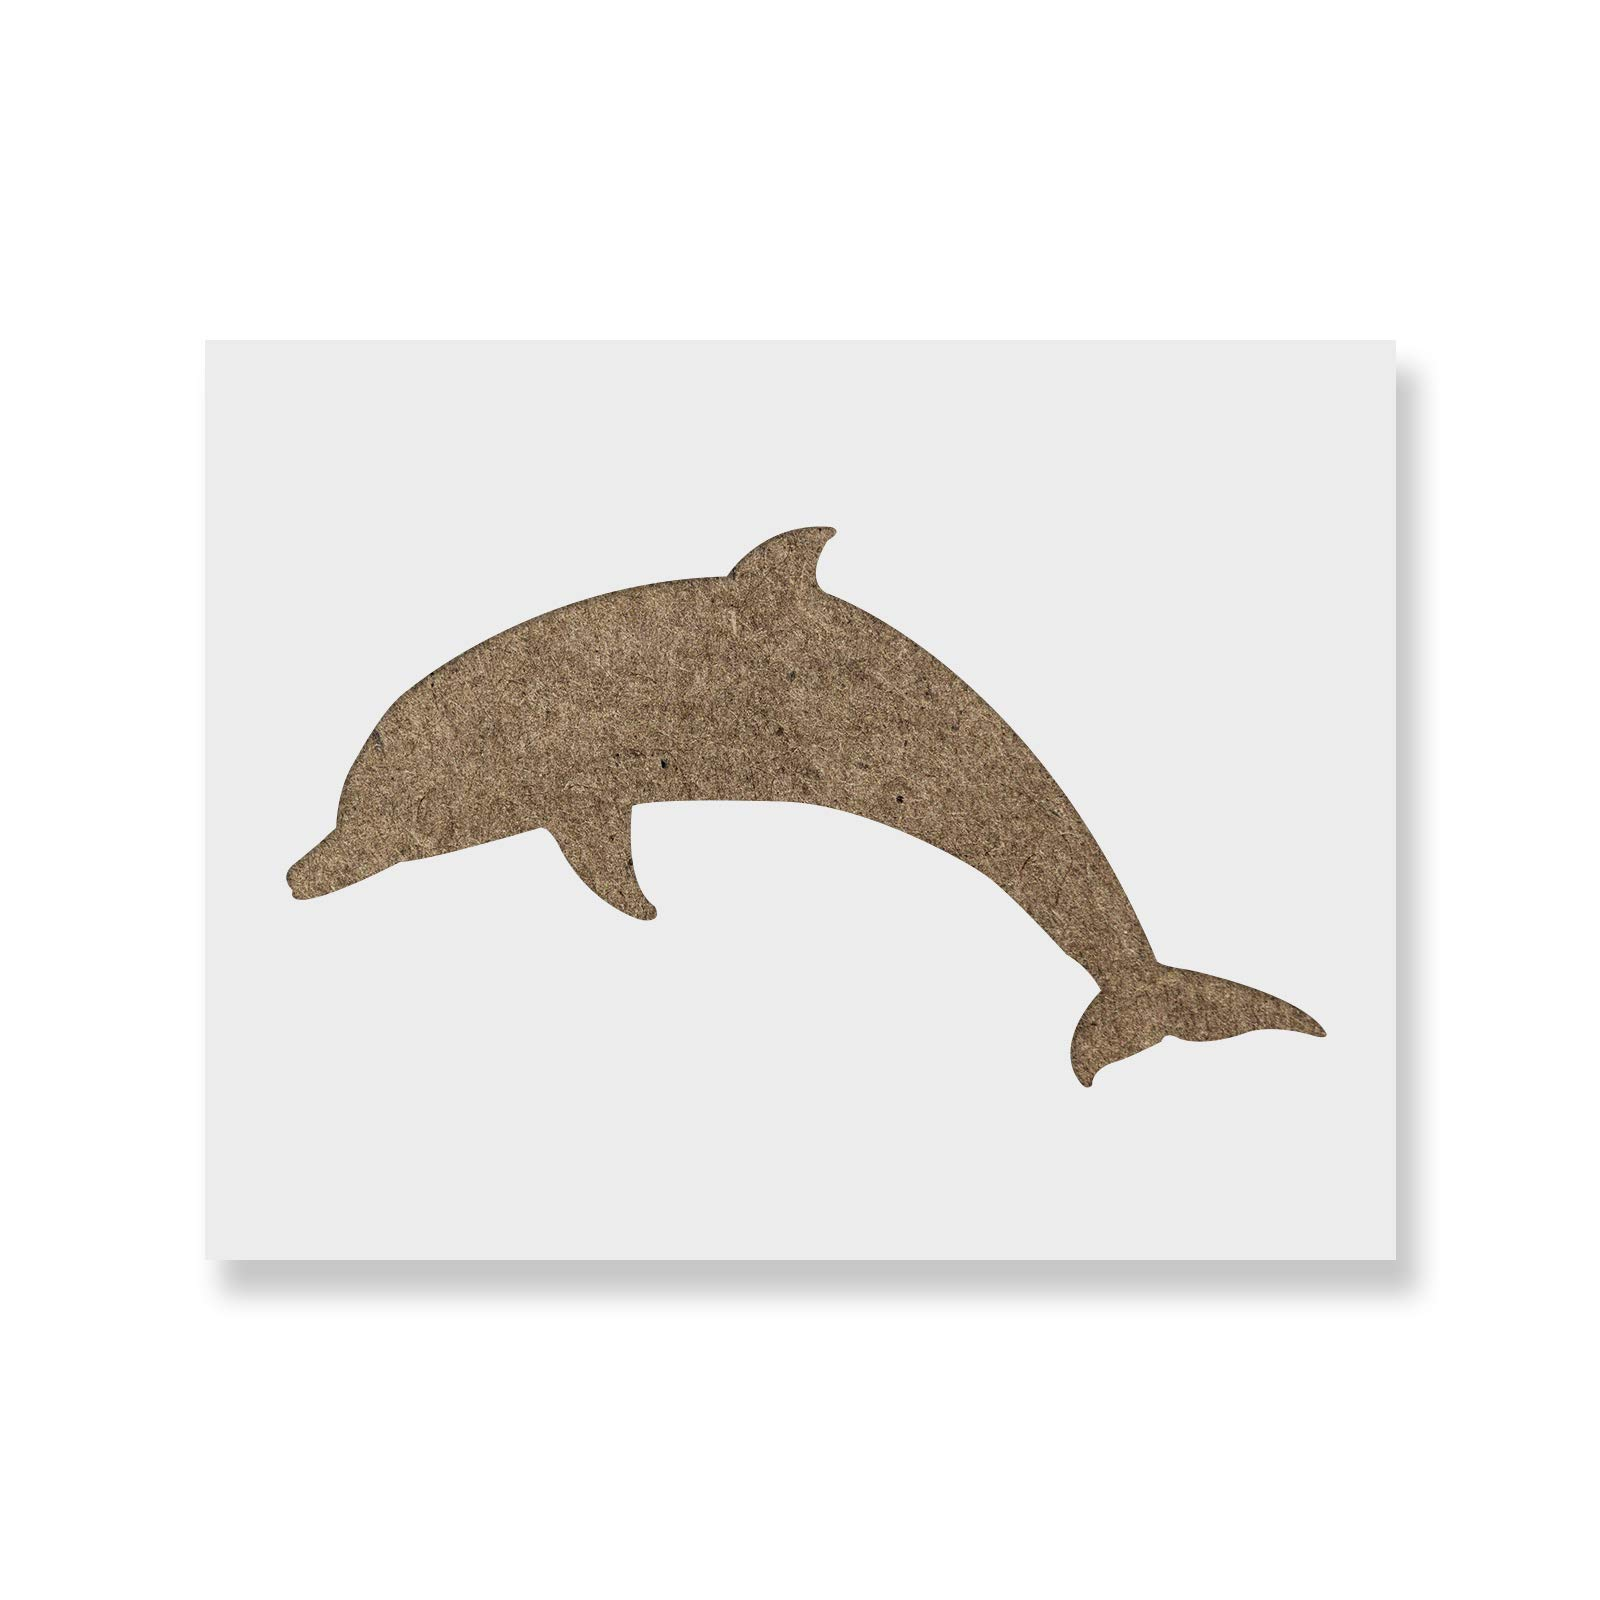 Dolphin Stencil Template - Reusable Stencil with Multiple Sizes Available